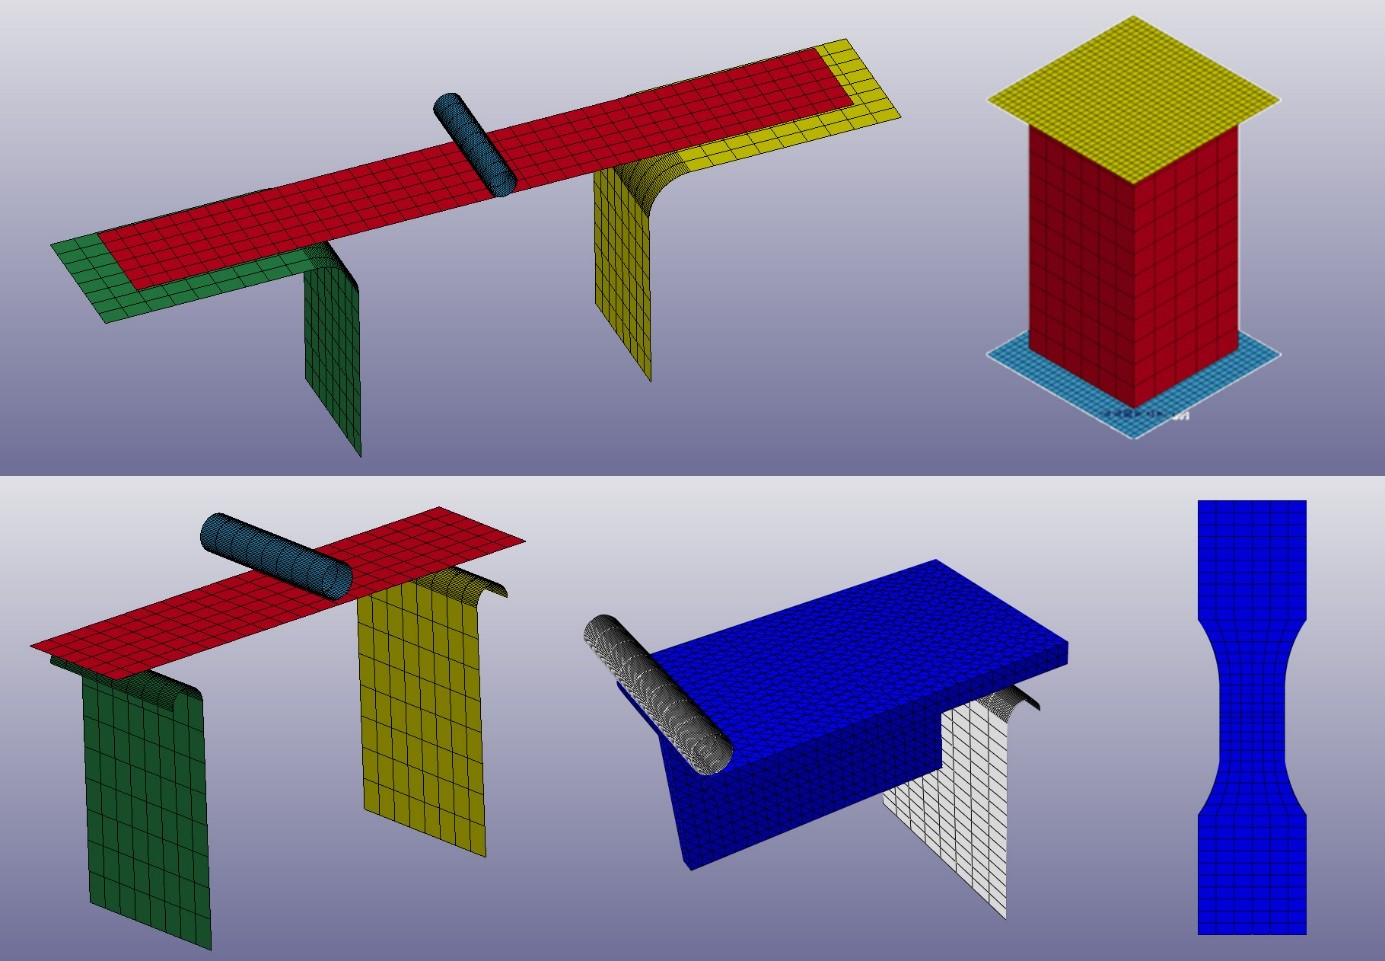 4a valimat simulation models